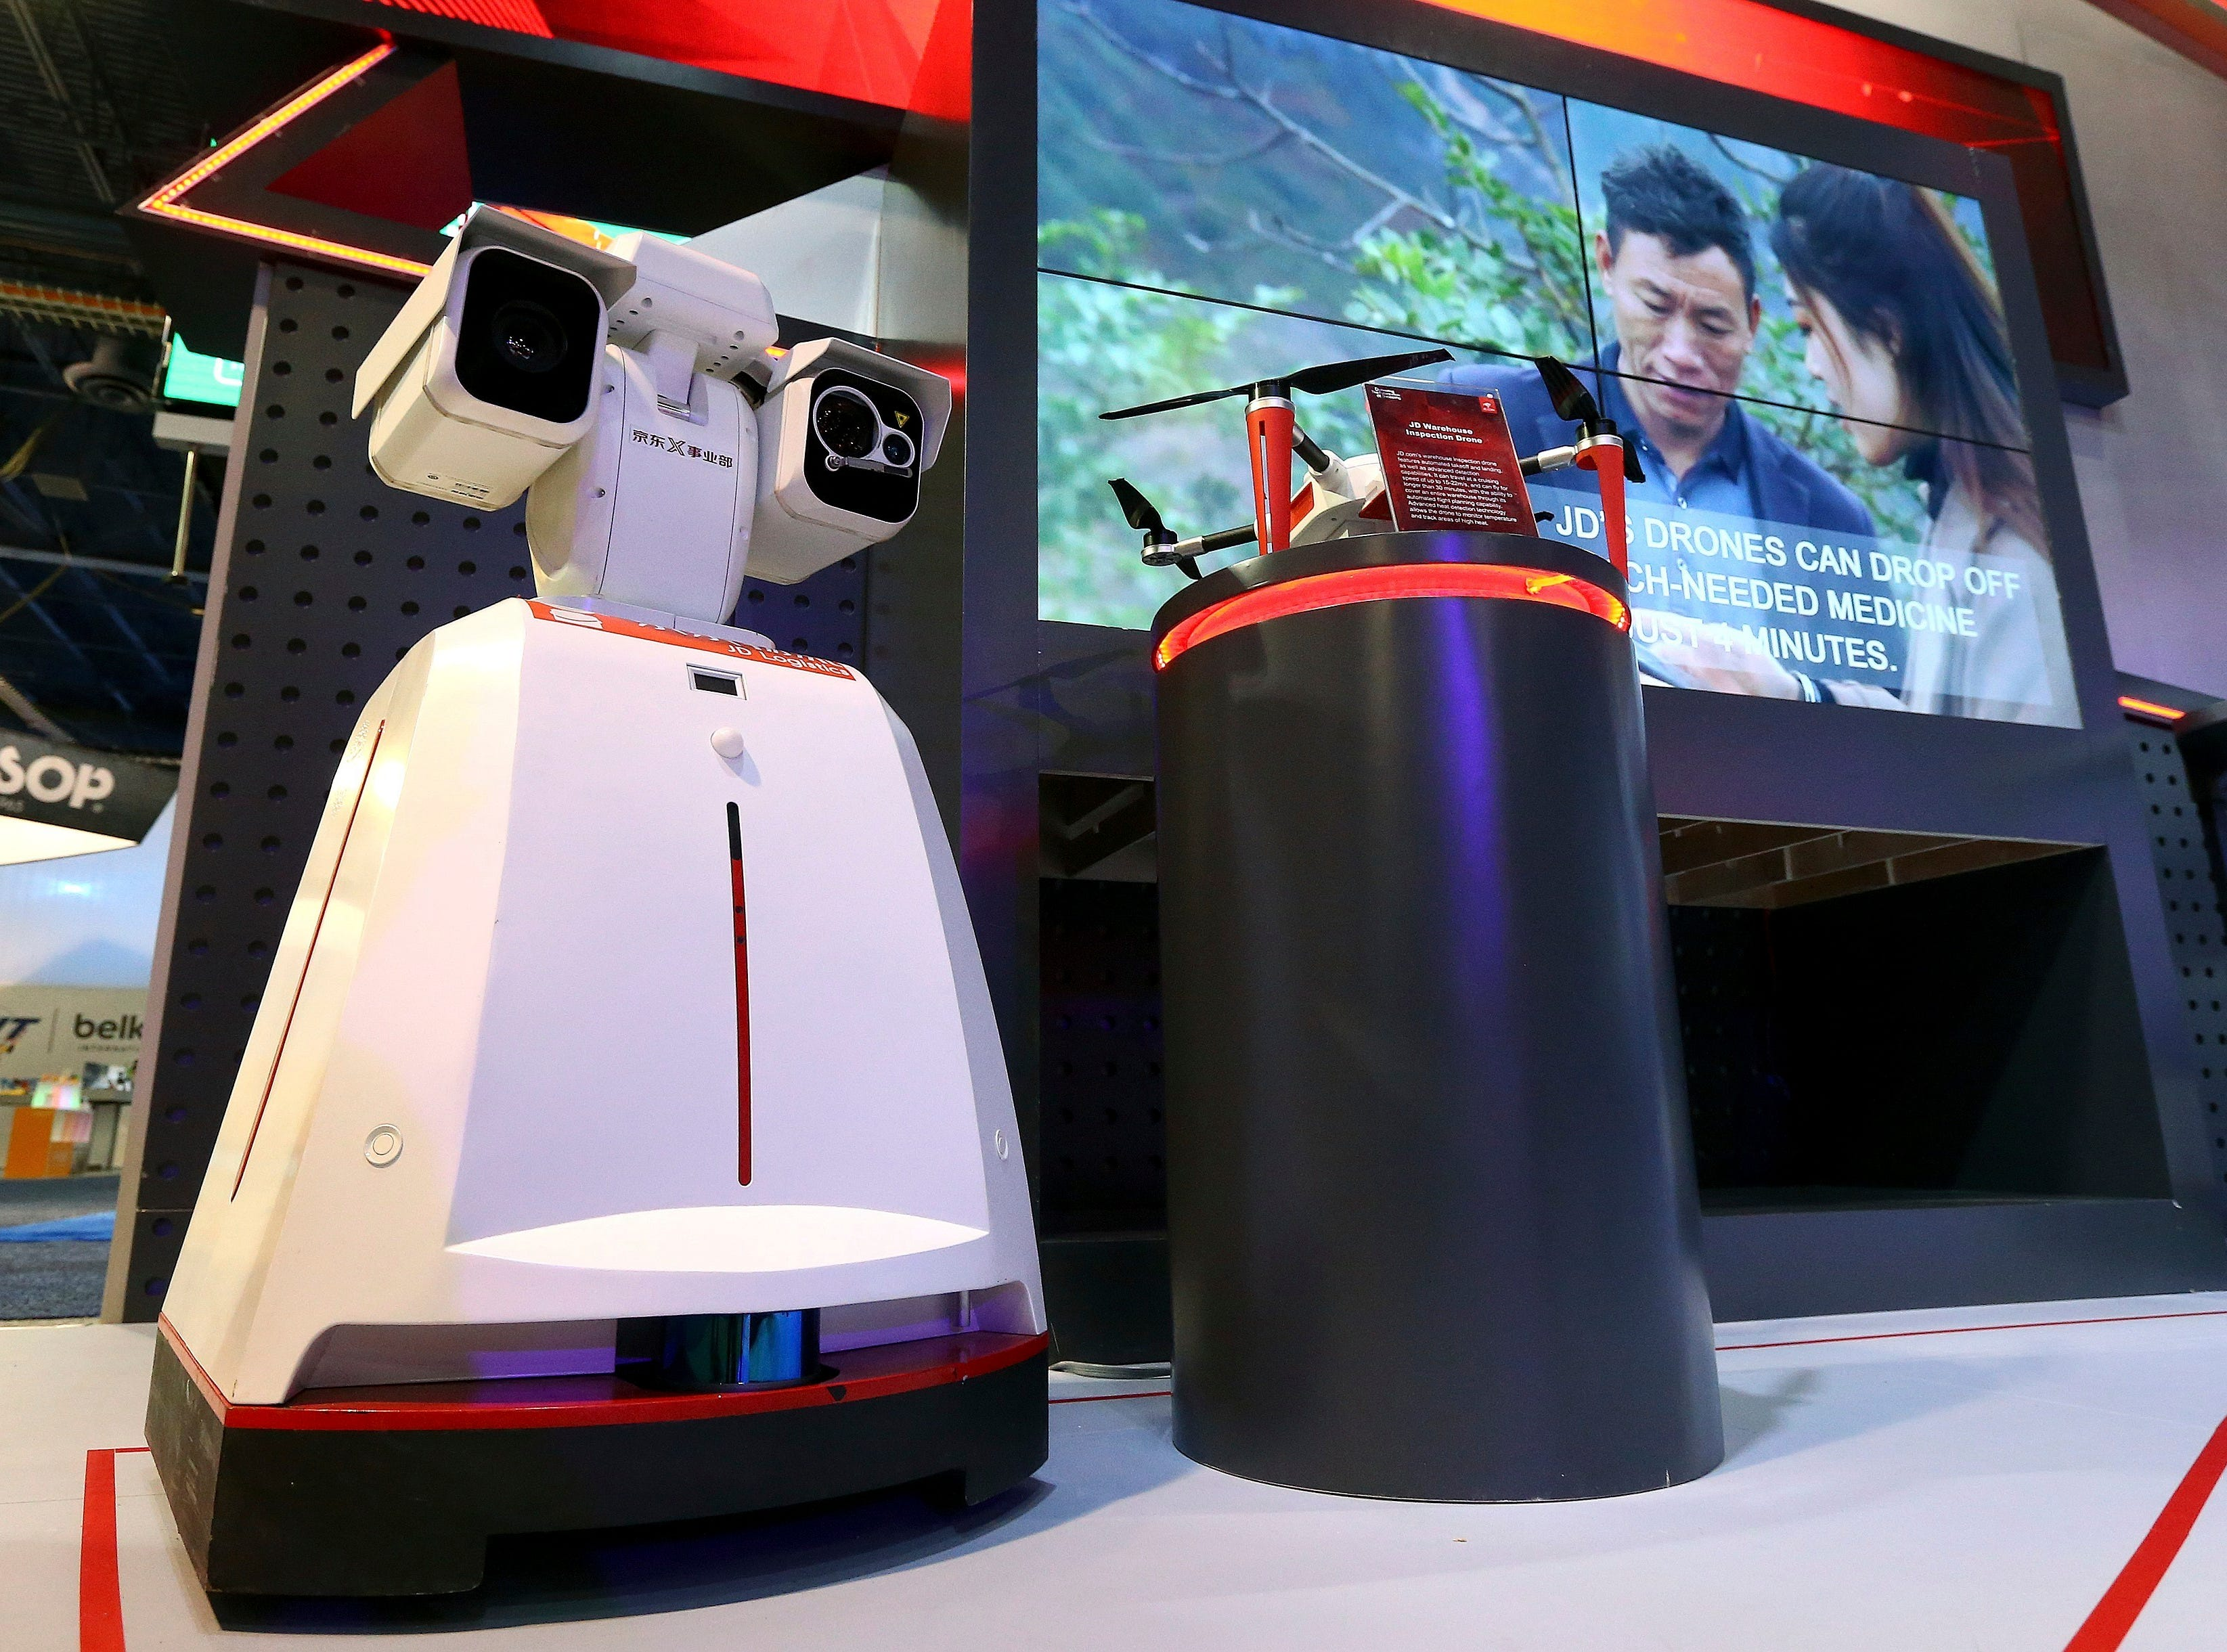 JD.com makes two different automated warehouse inspection drones, shown here at CES International on Tuesday, Jan. 8, 2019, in Las Vegas.